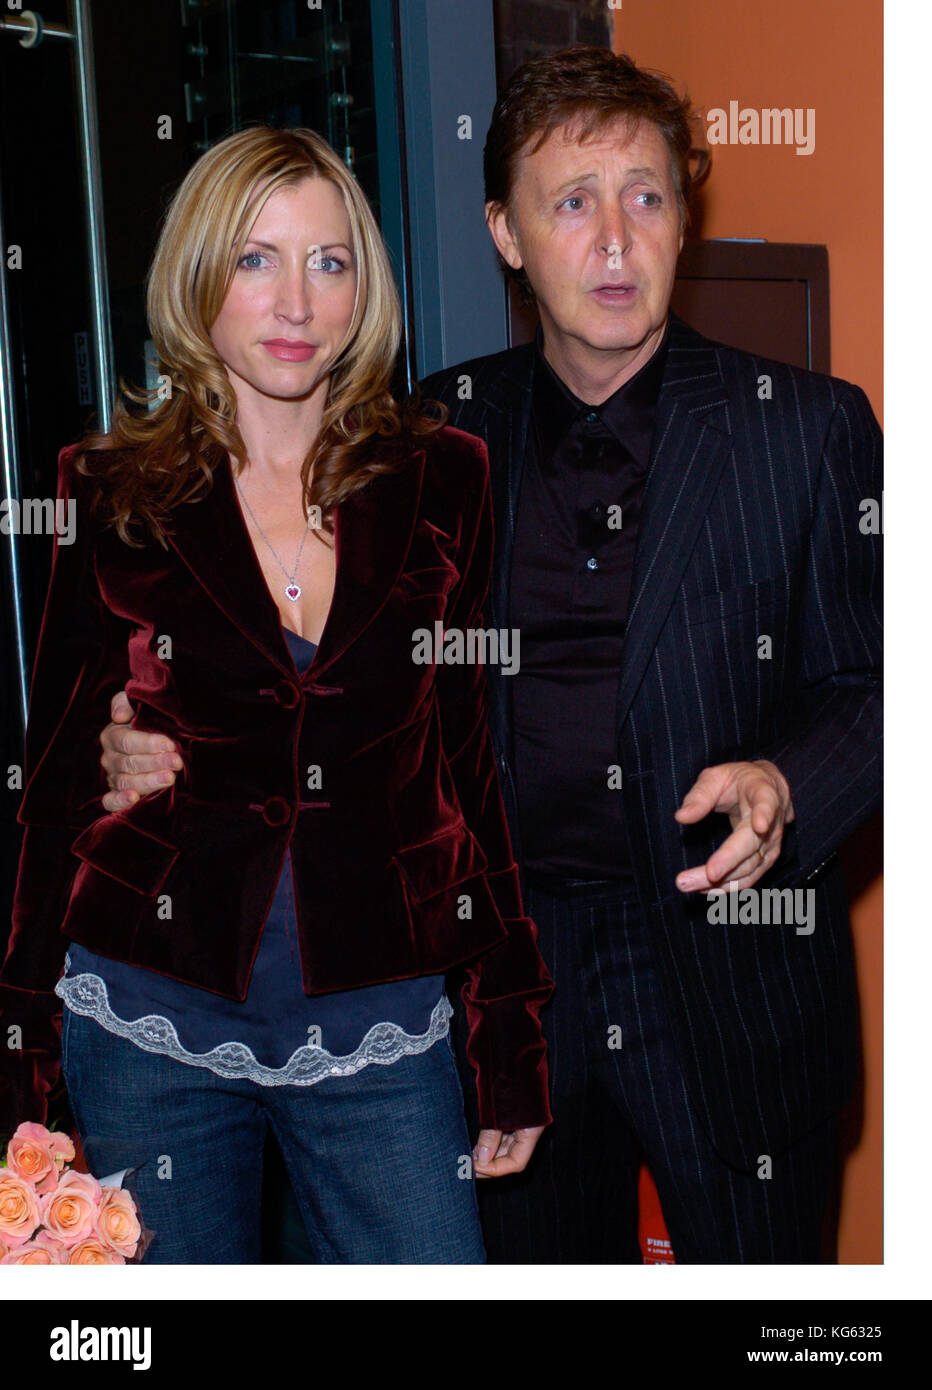 Paul McCartney And Heather Mills Attend A London Function England UK 2004